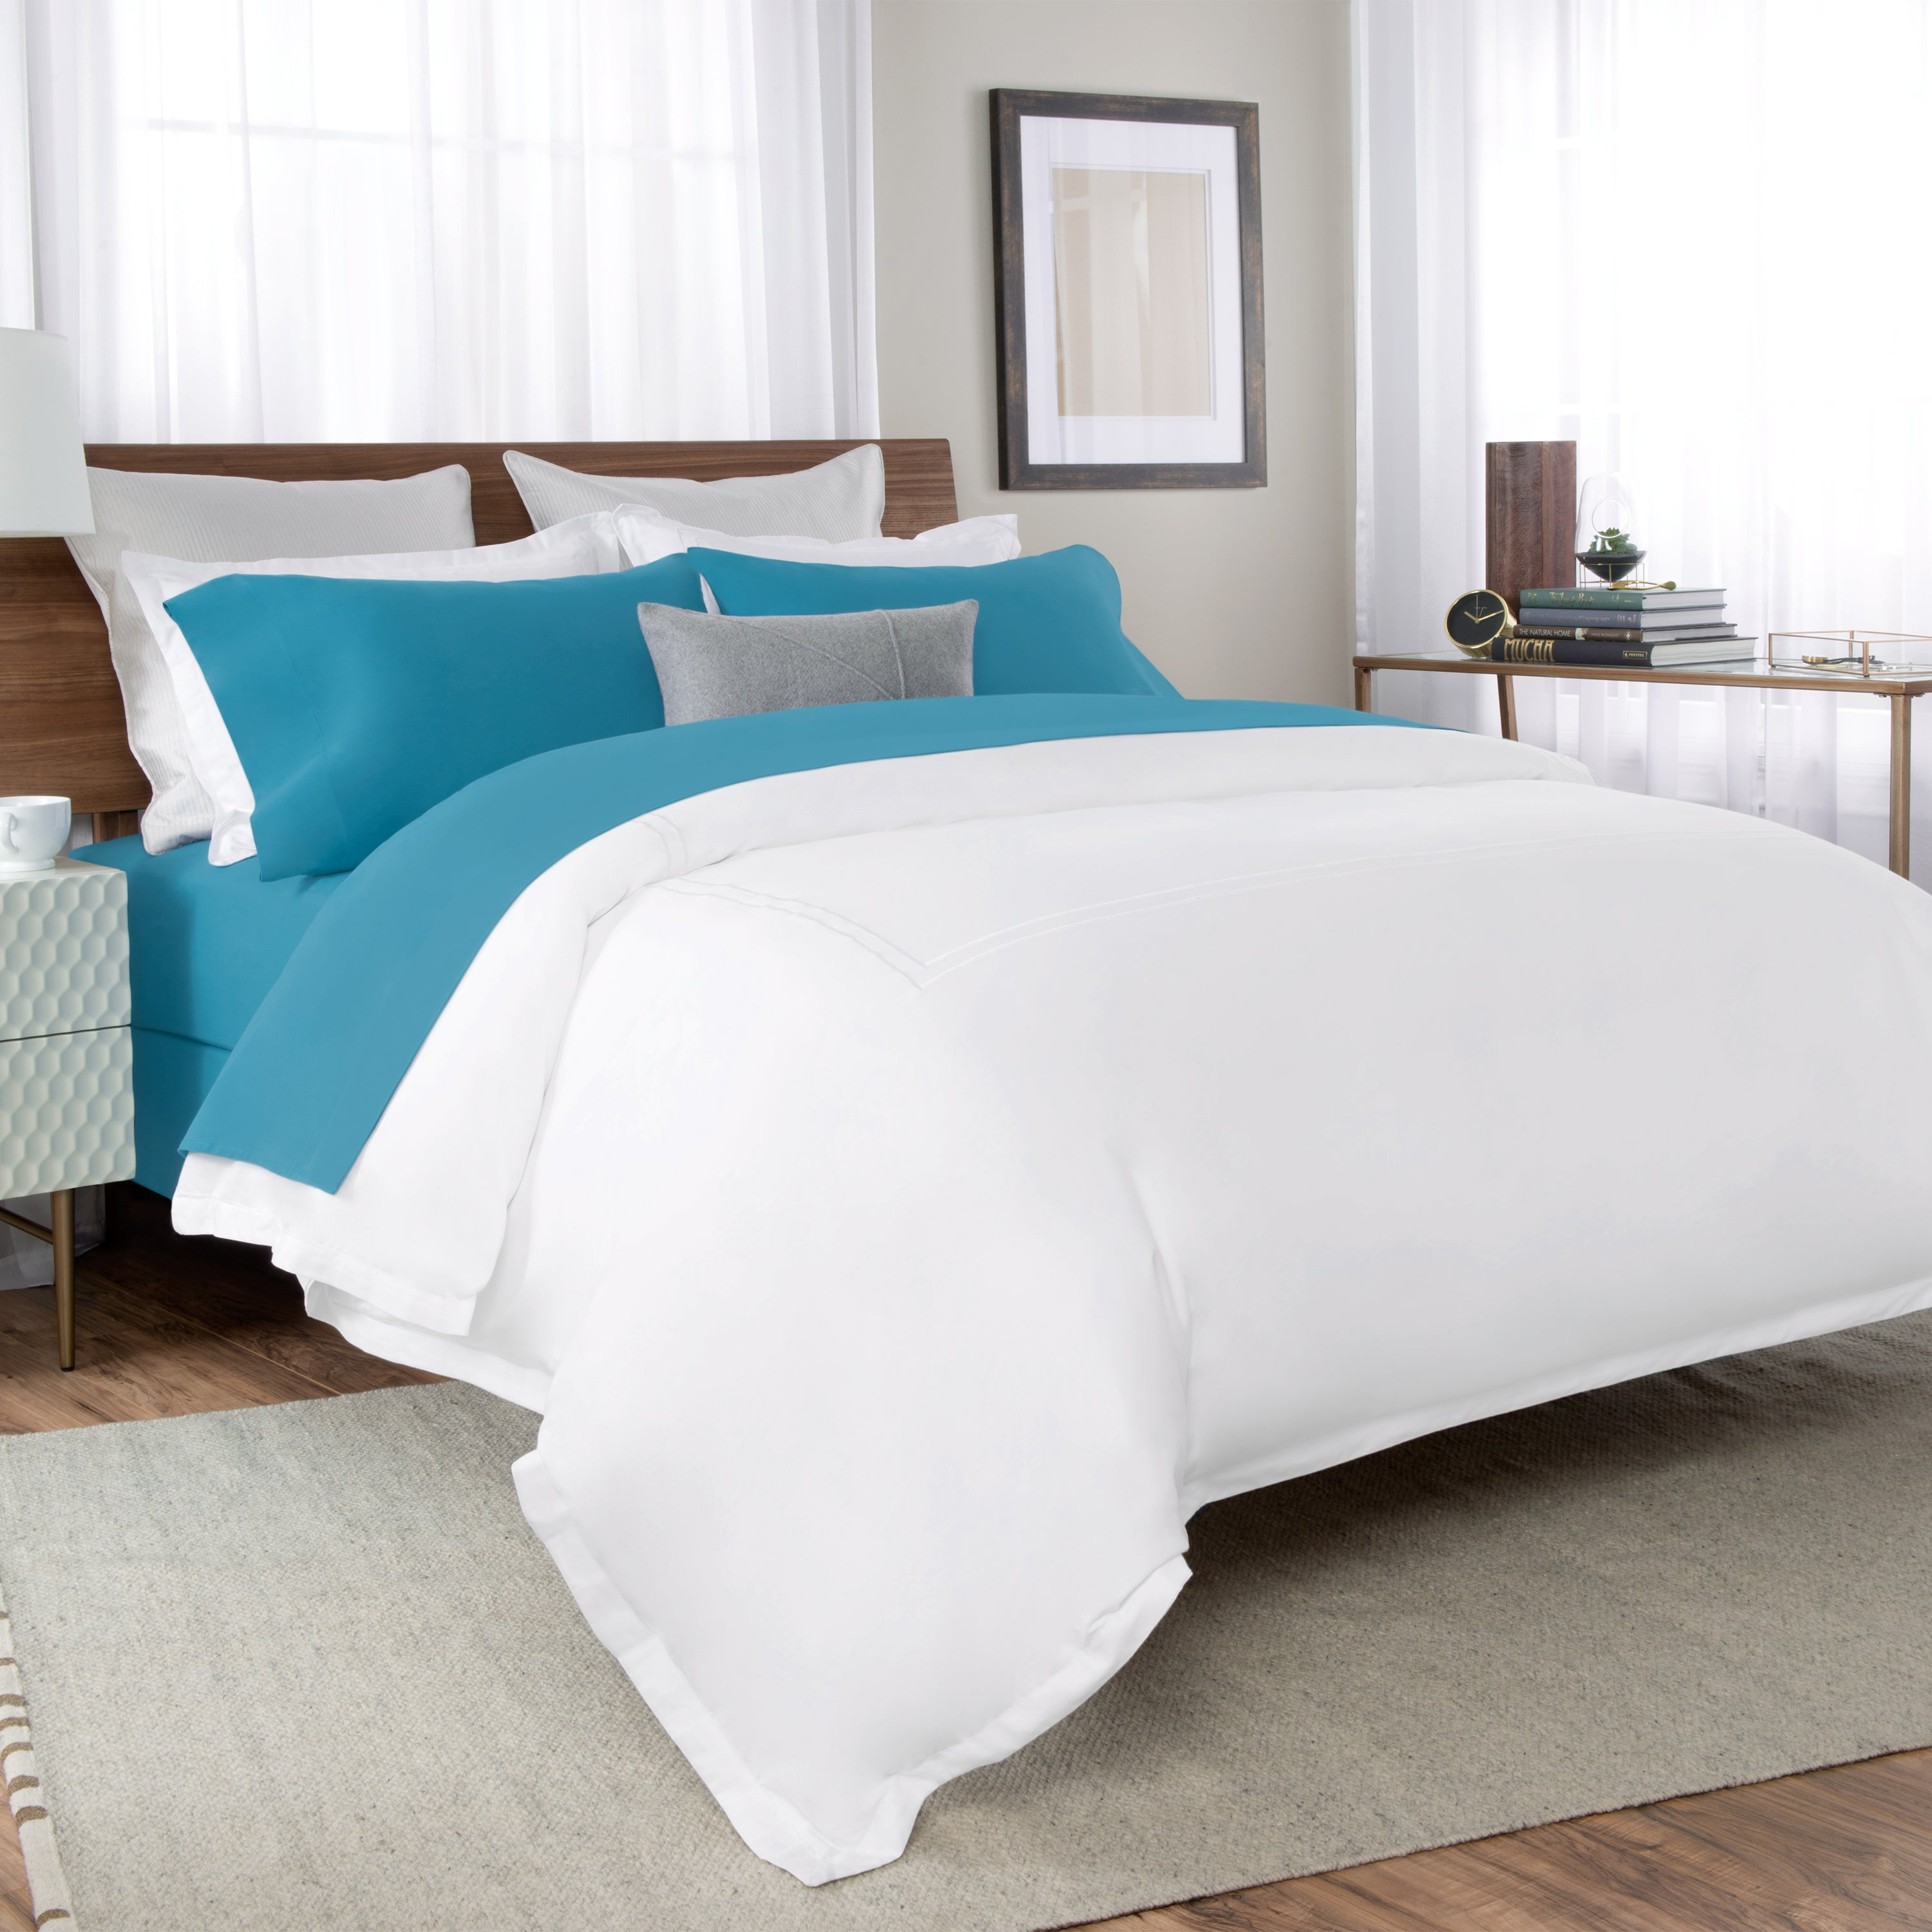 Say Goodbye To Sweaty Sleeps, Crisp U0026 Cool Percale Bed Sheet, Comfy To The  Touch, Fitted Percale Sheet Set